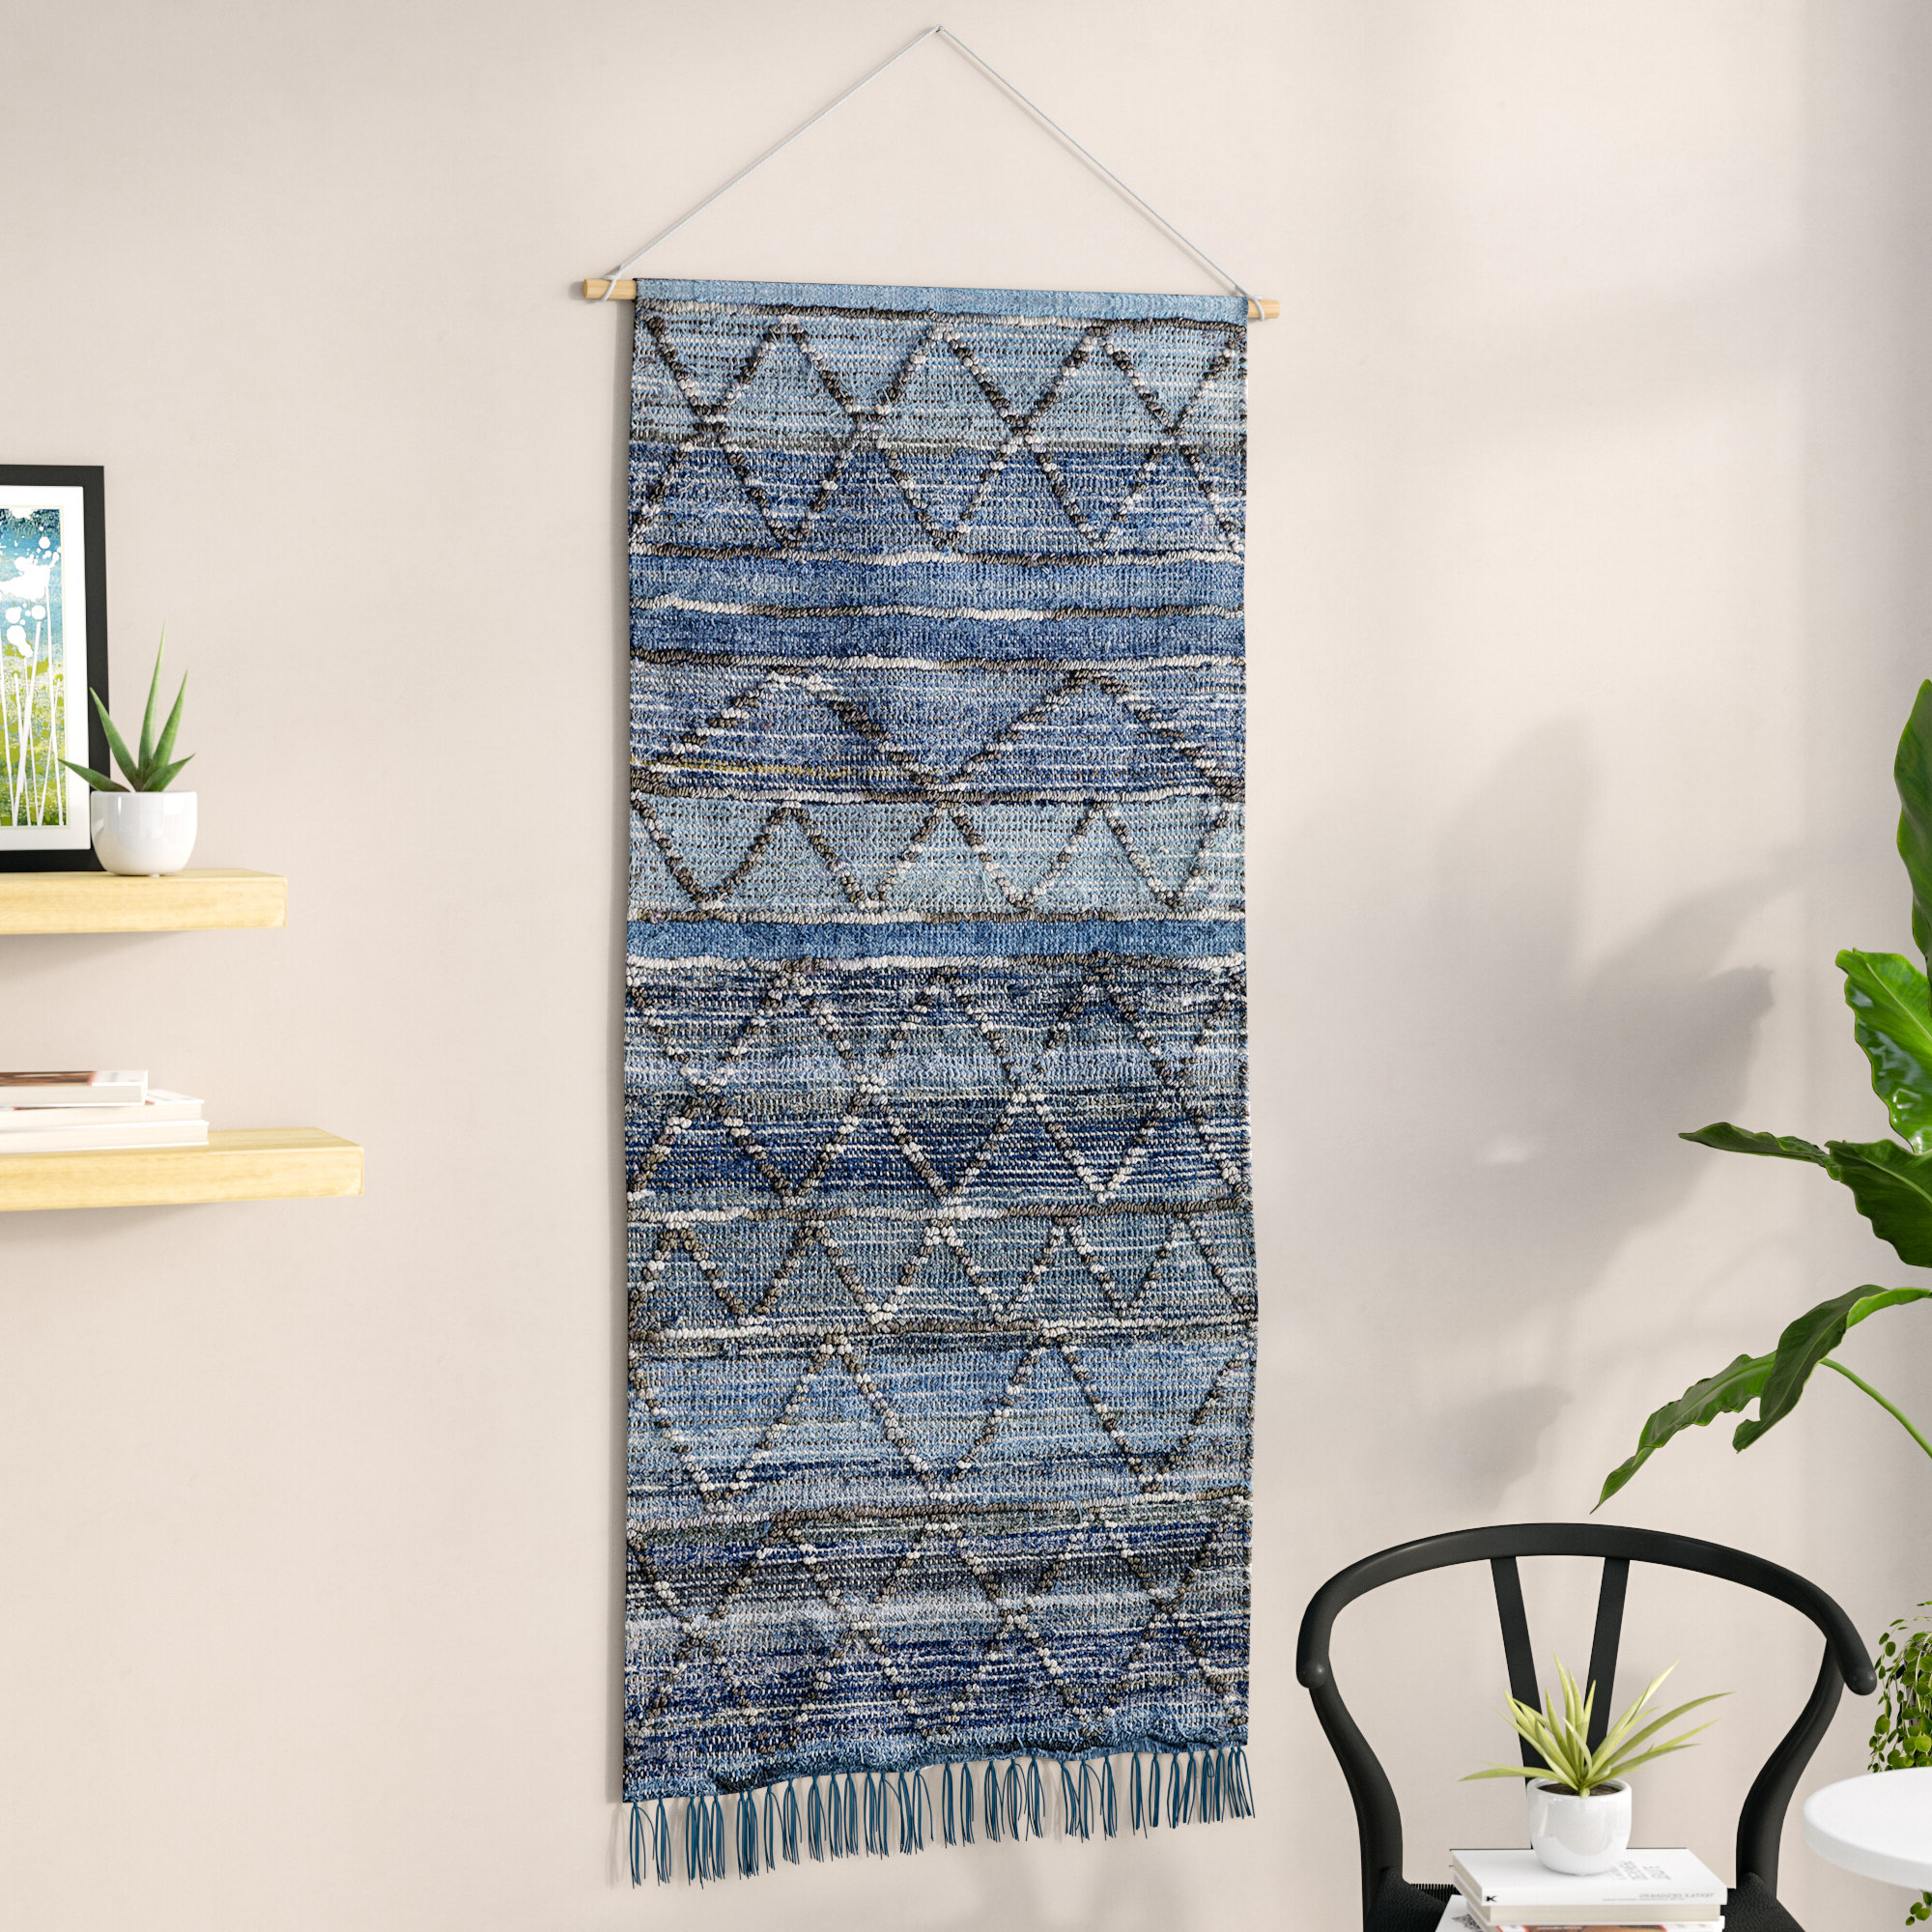 Blended Fabric Wall Hanging With Hanging Accessories Included Pertaining To Most Popular Blended Fabric Wall Hangings With Hanging Accessories Included (View 2 of 20)